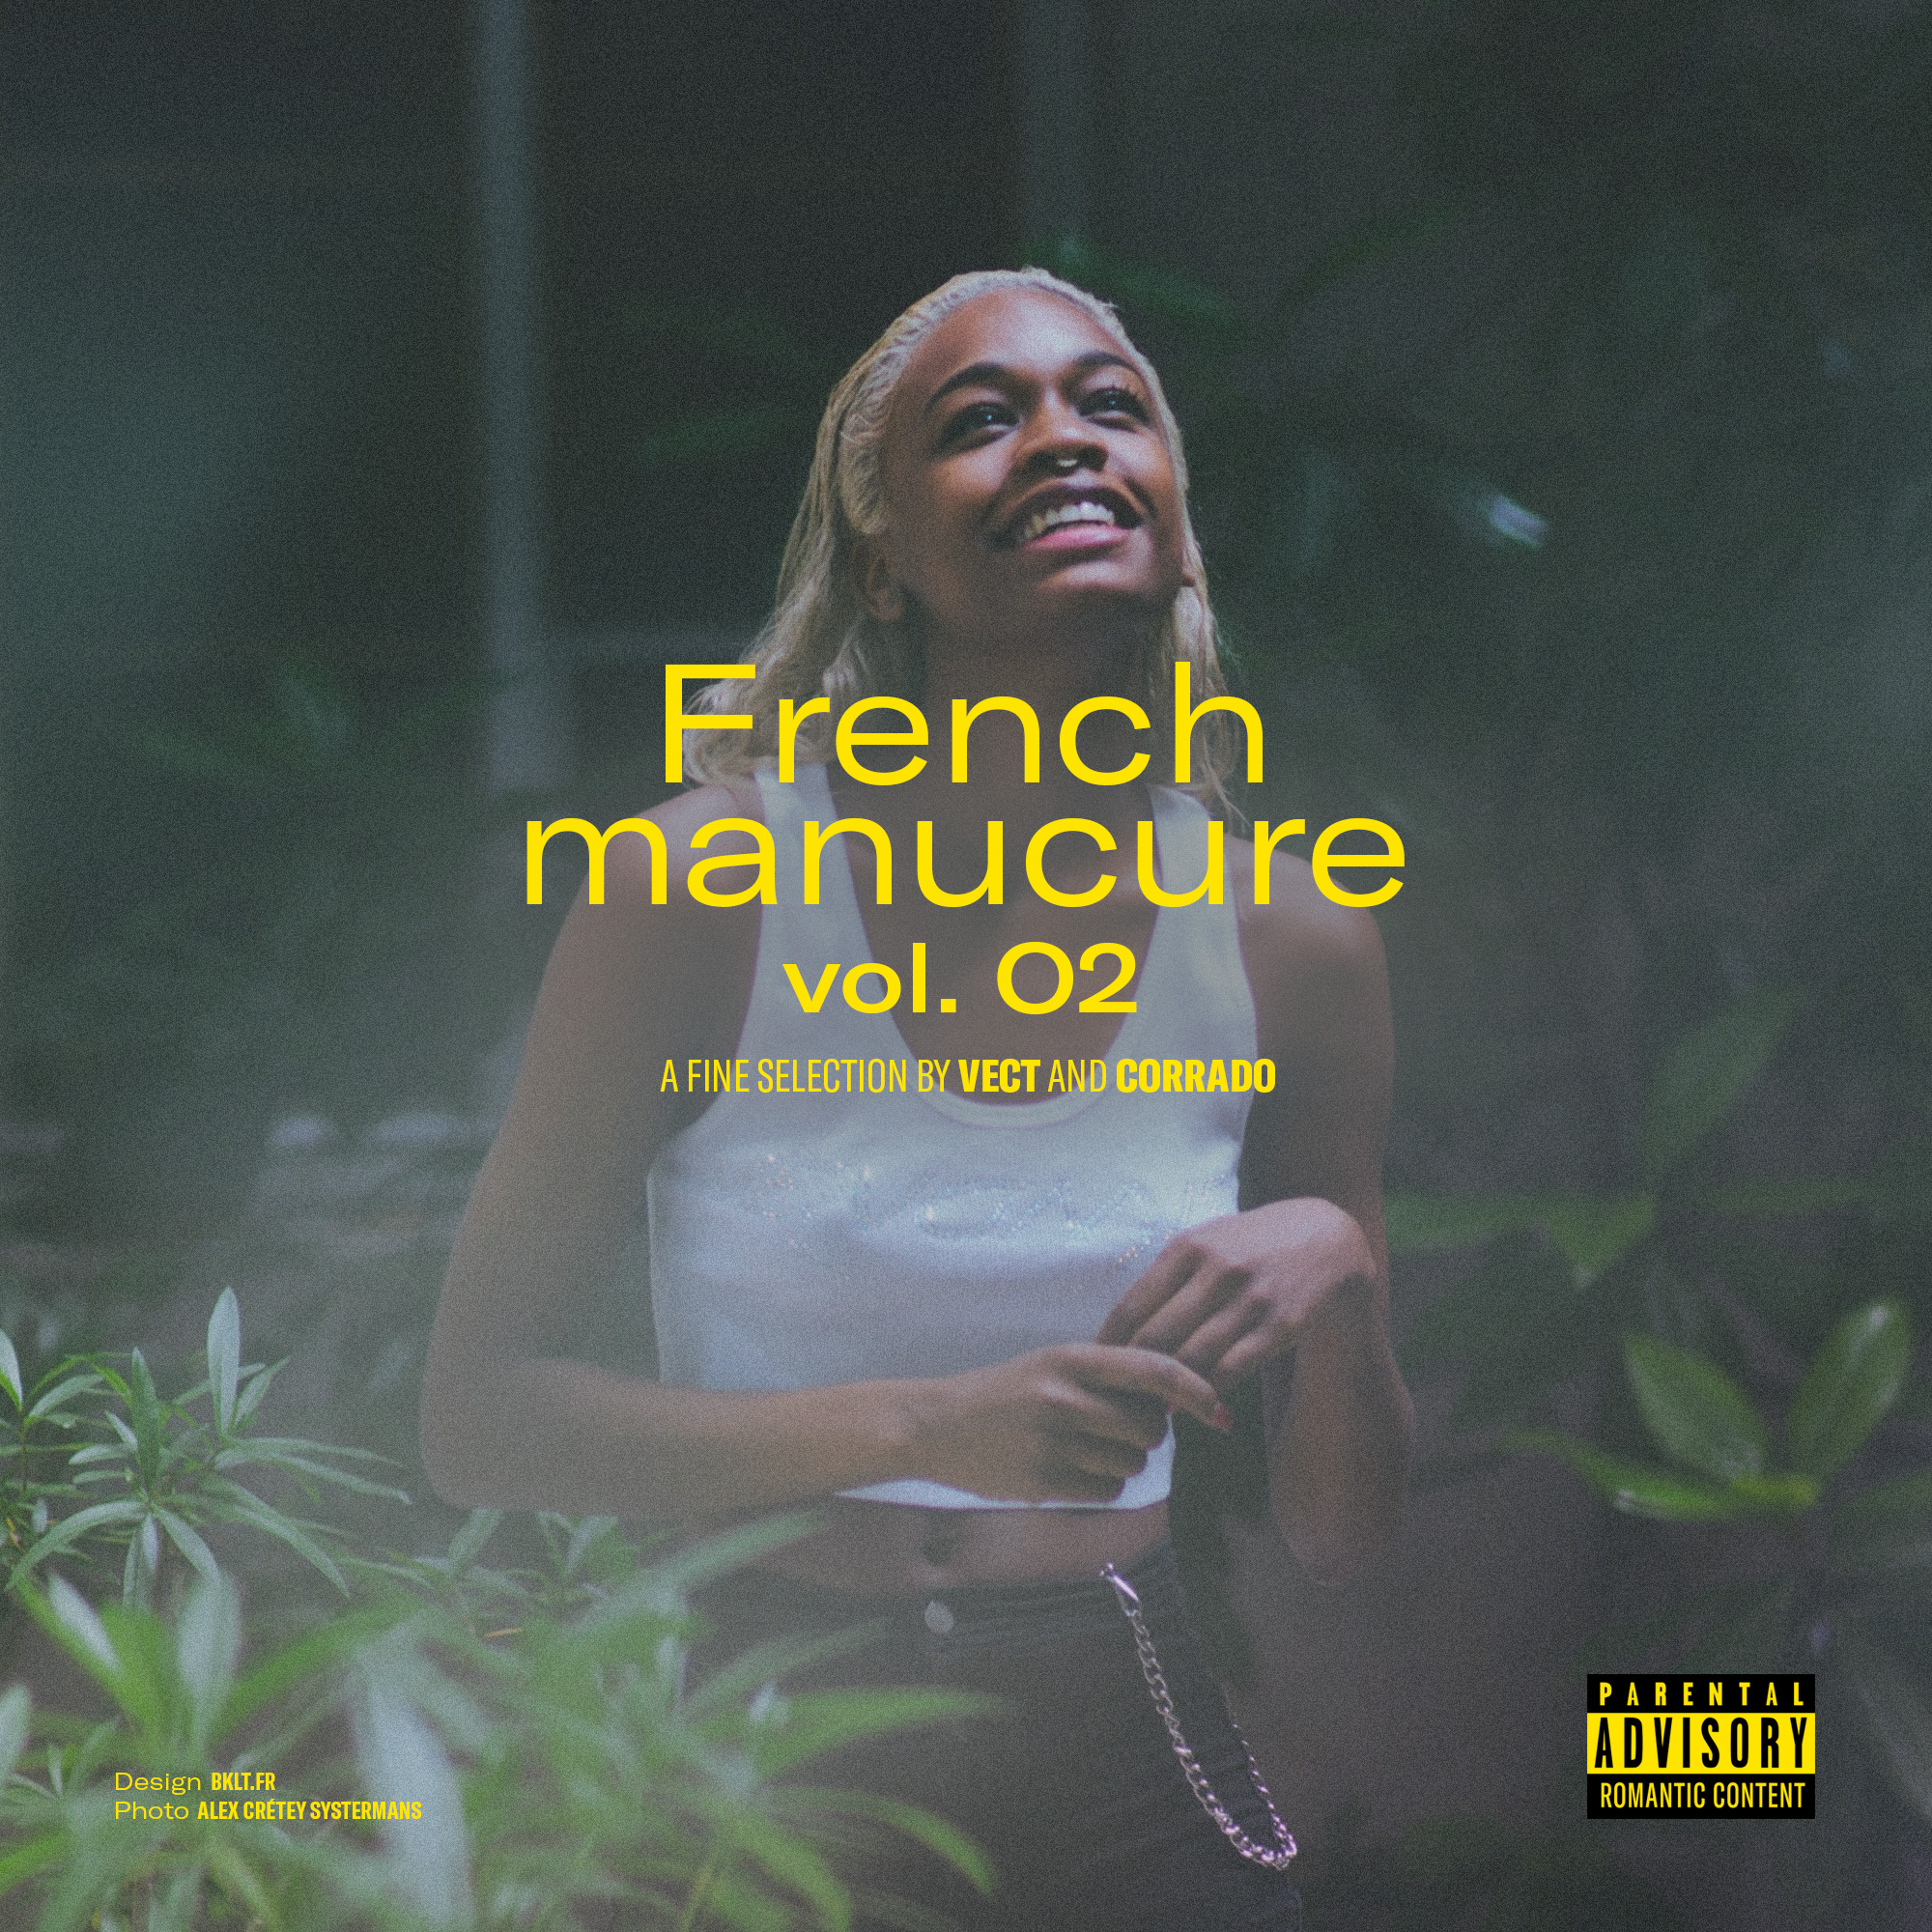 French Manucure 2 by Vect & Corrado